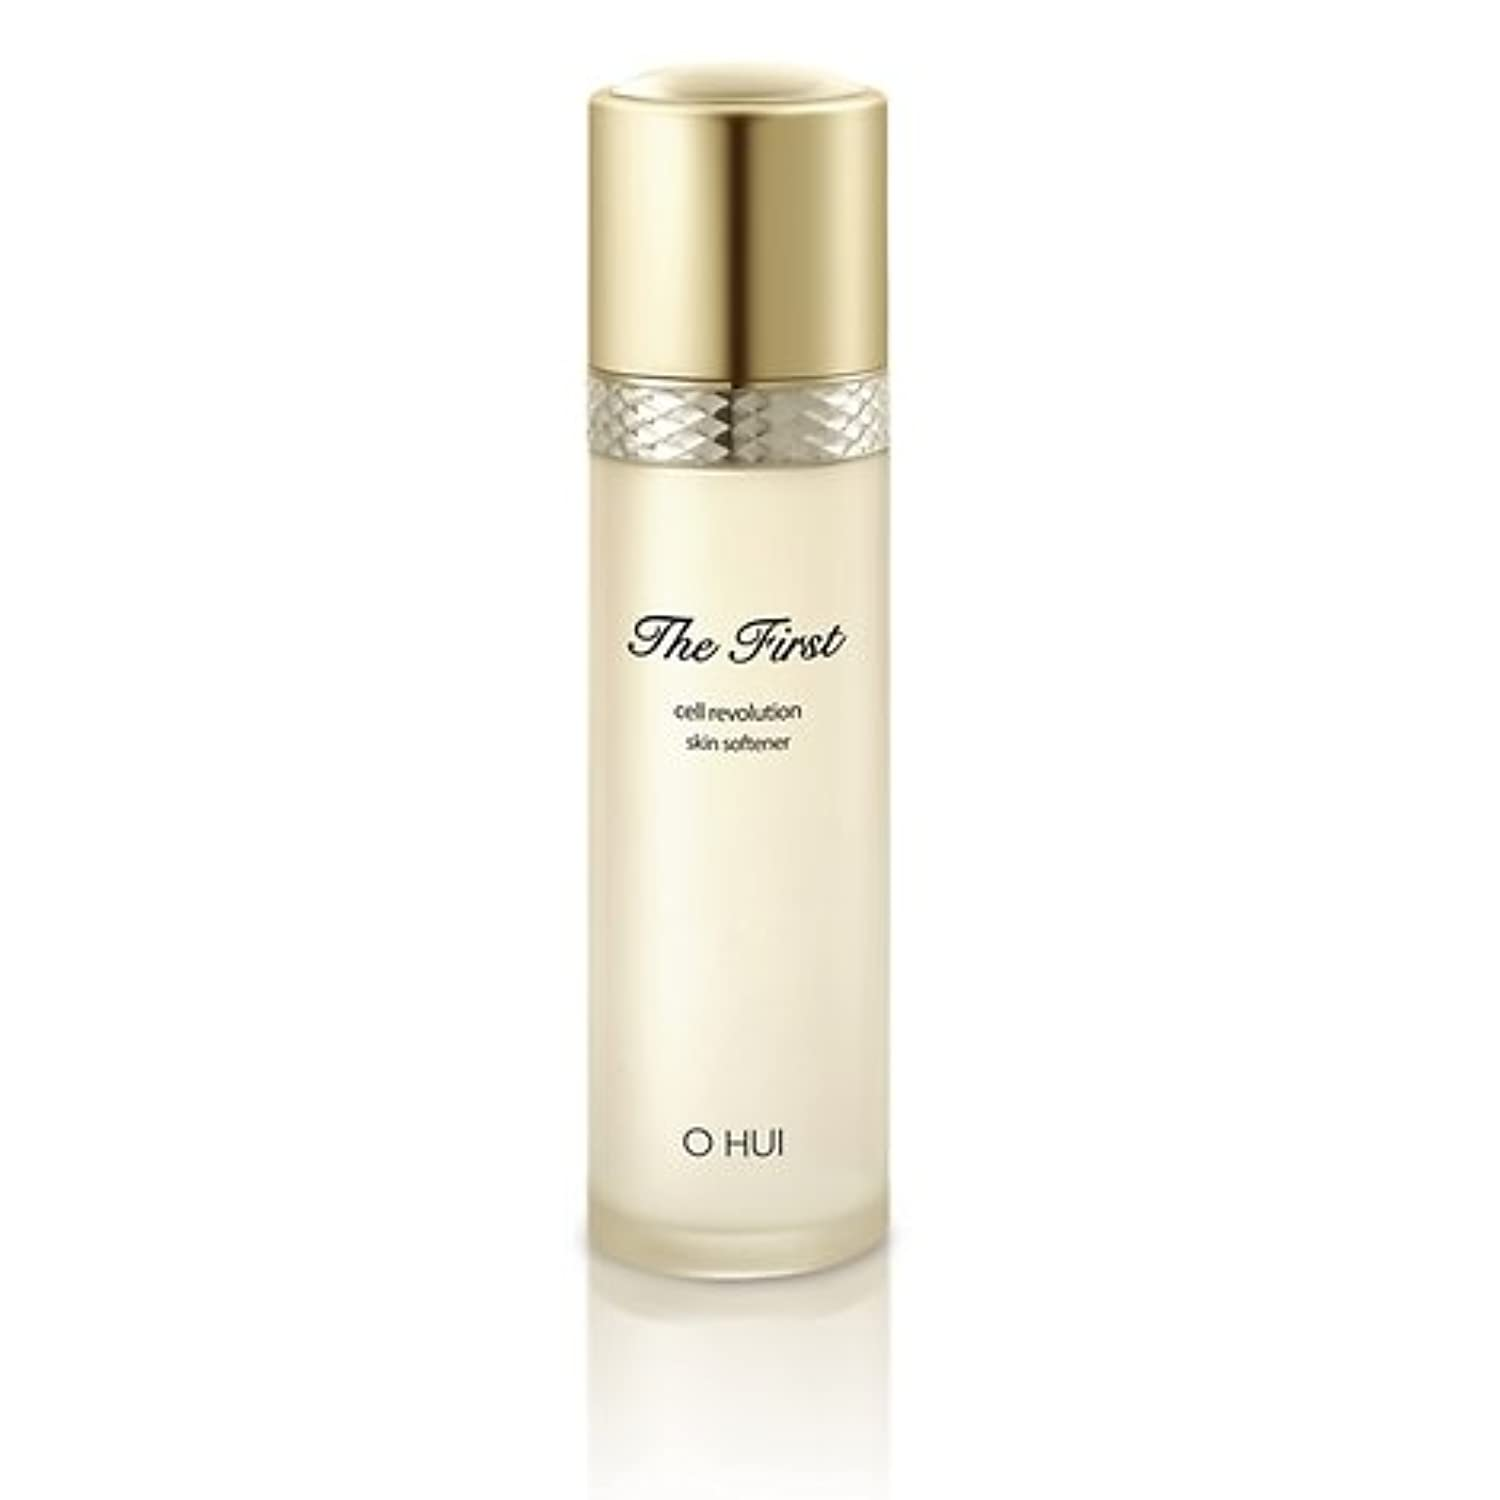 Ohui The First Cell Revolution Skin Softener_150ml